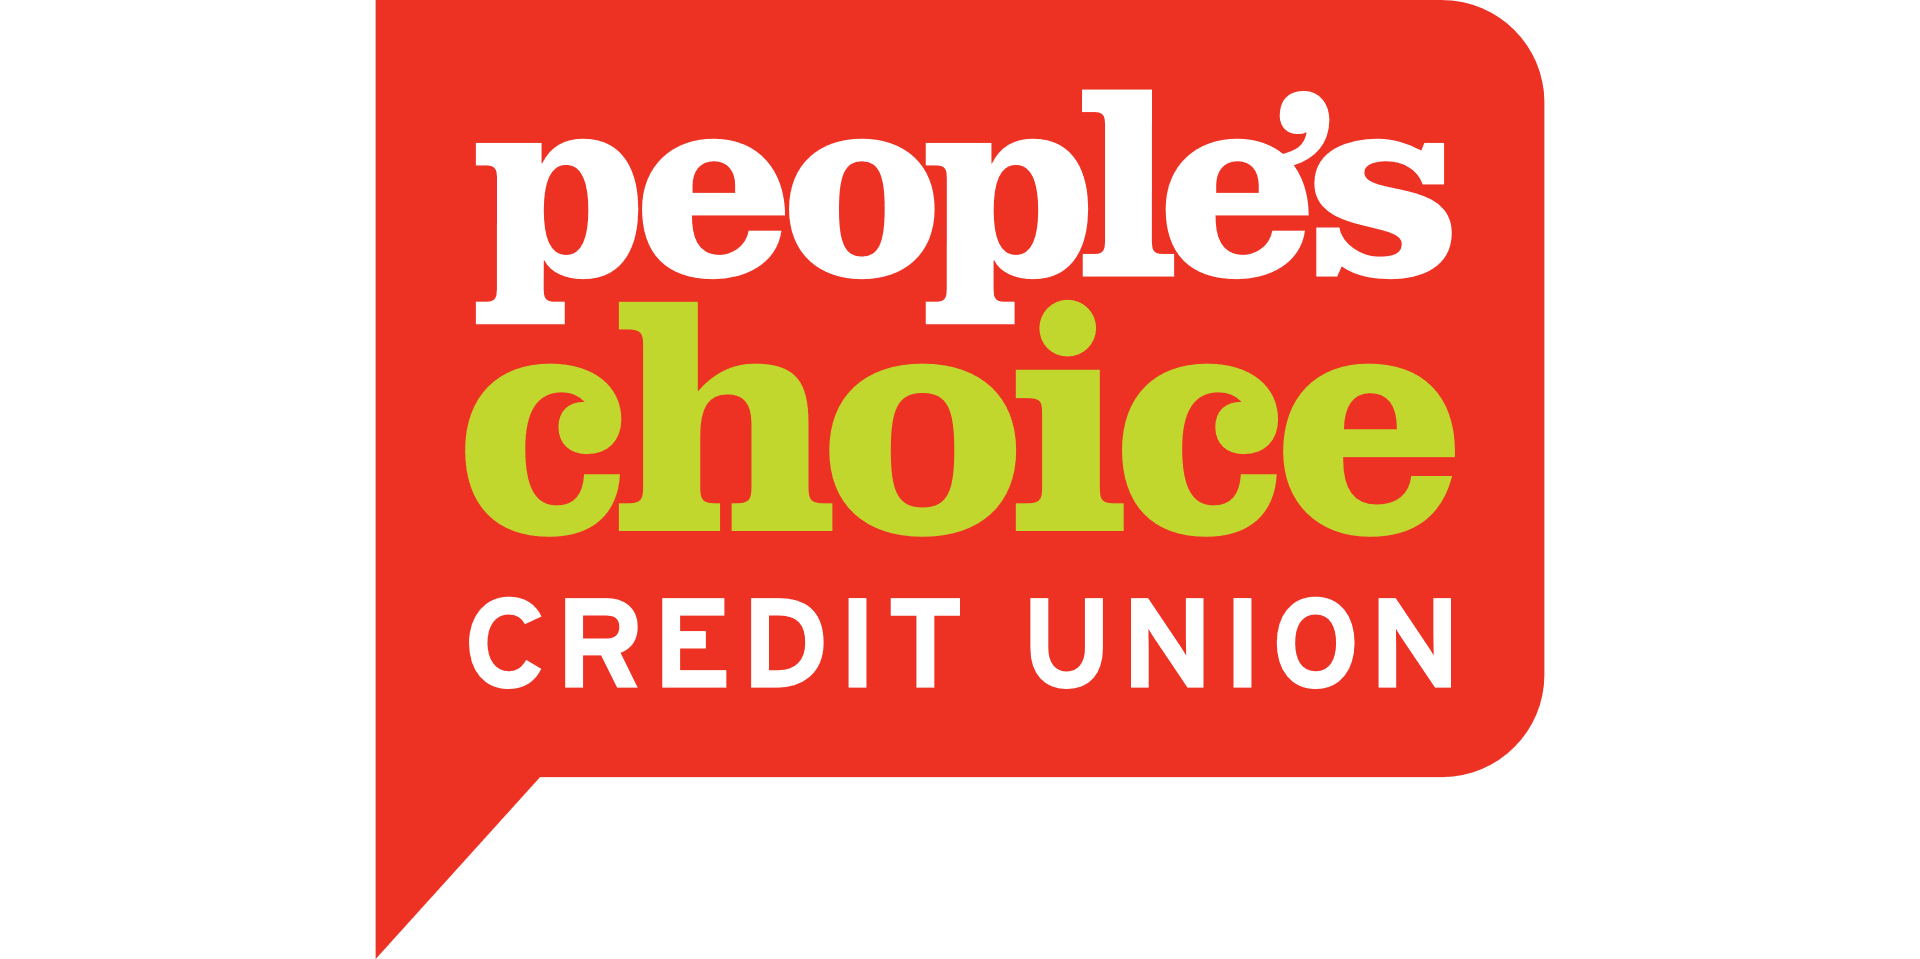 People's Choice Credit Union - Blackwood, SA 5051 - (01) 3118 1182 | ShowMeLocal.com